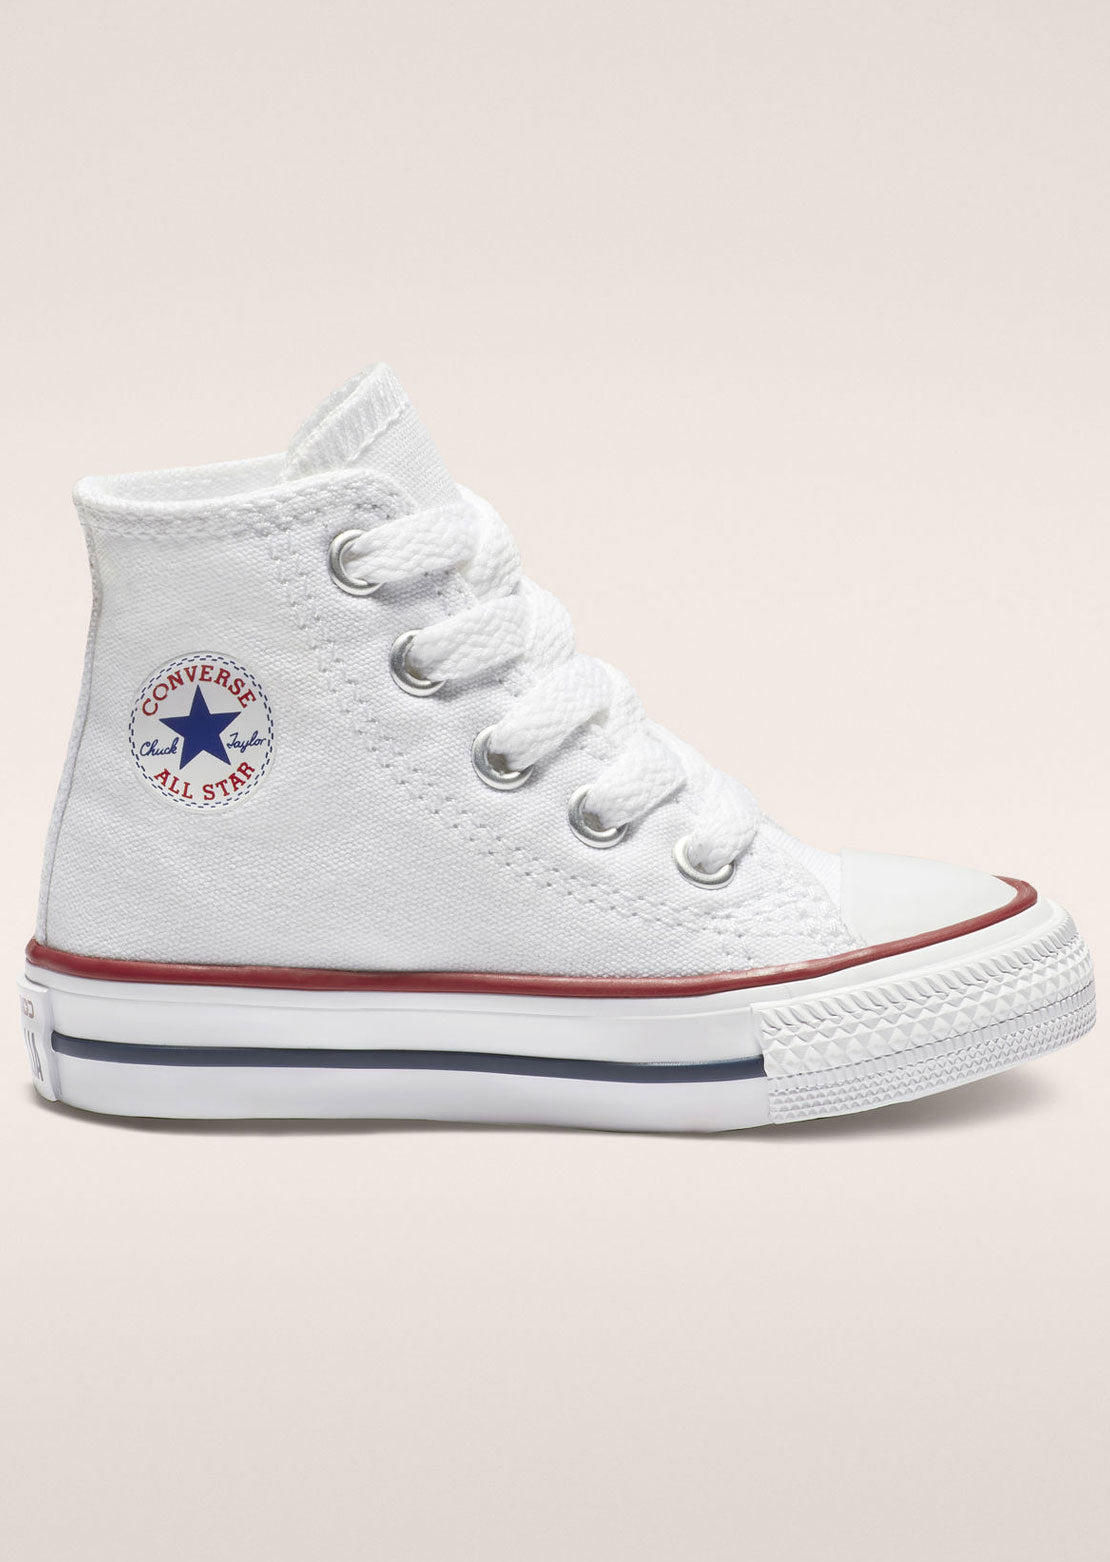 Converse Toddler Chuck Taylor Hi Top Shoes Optical White